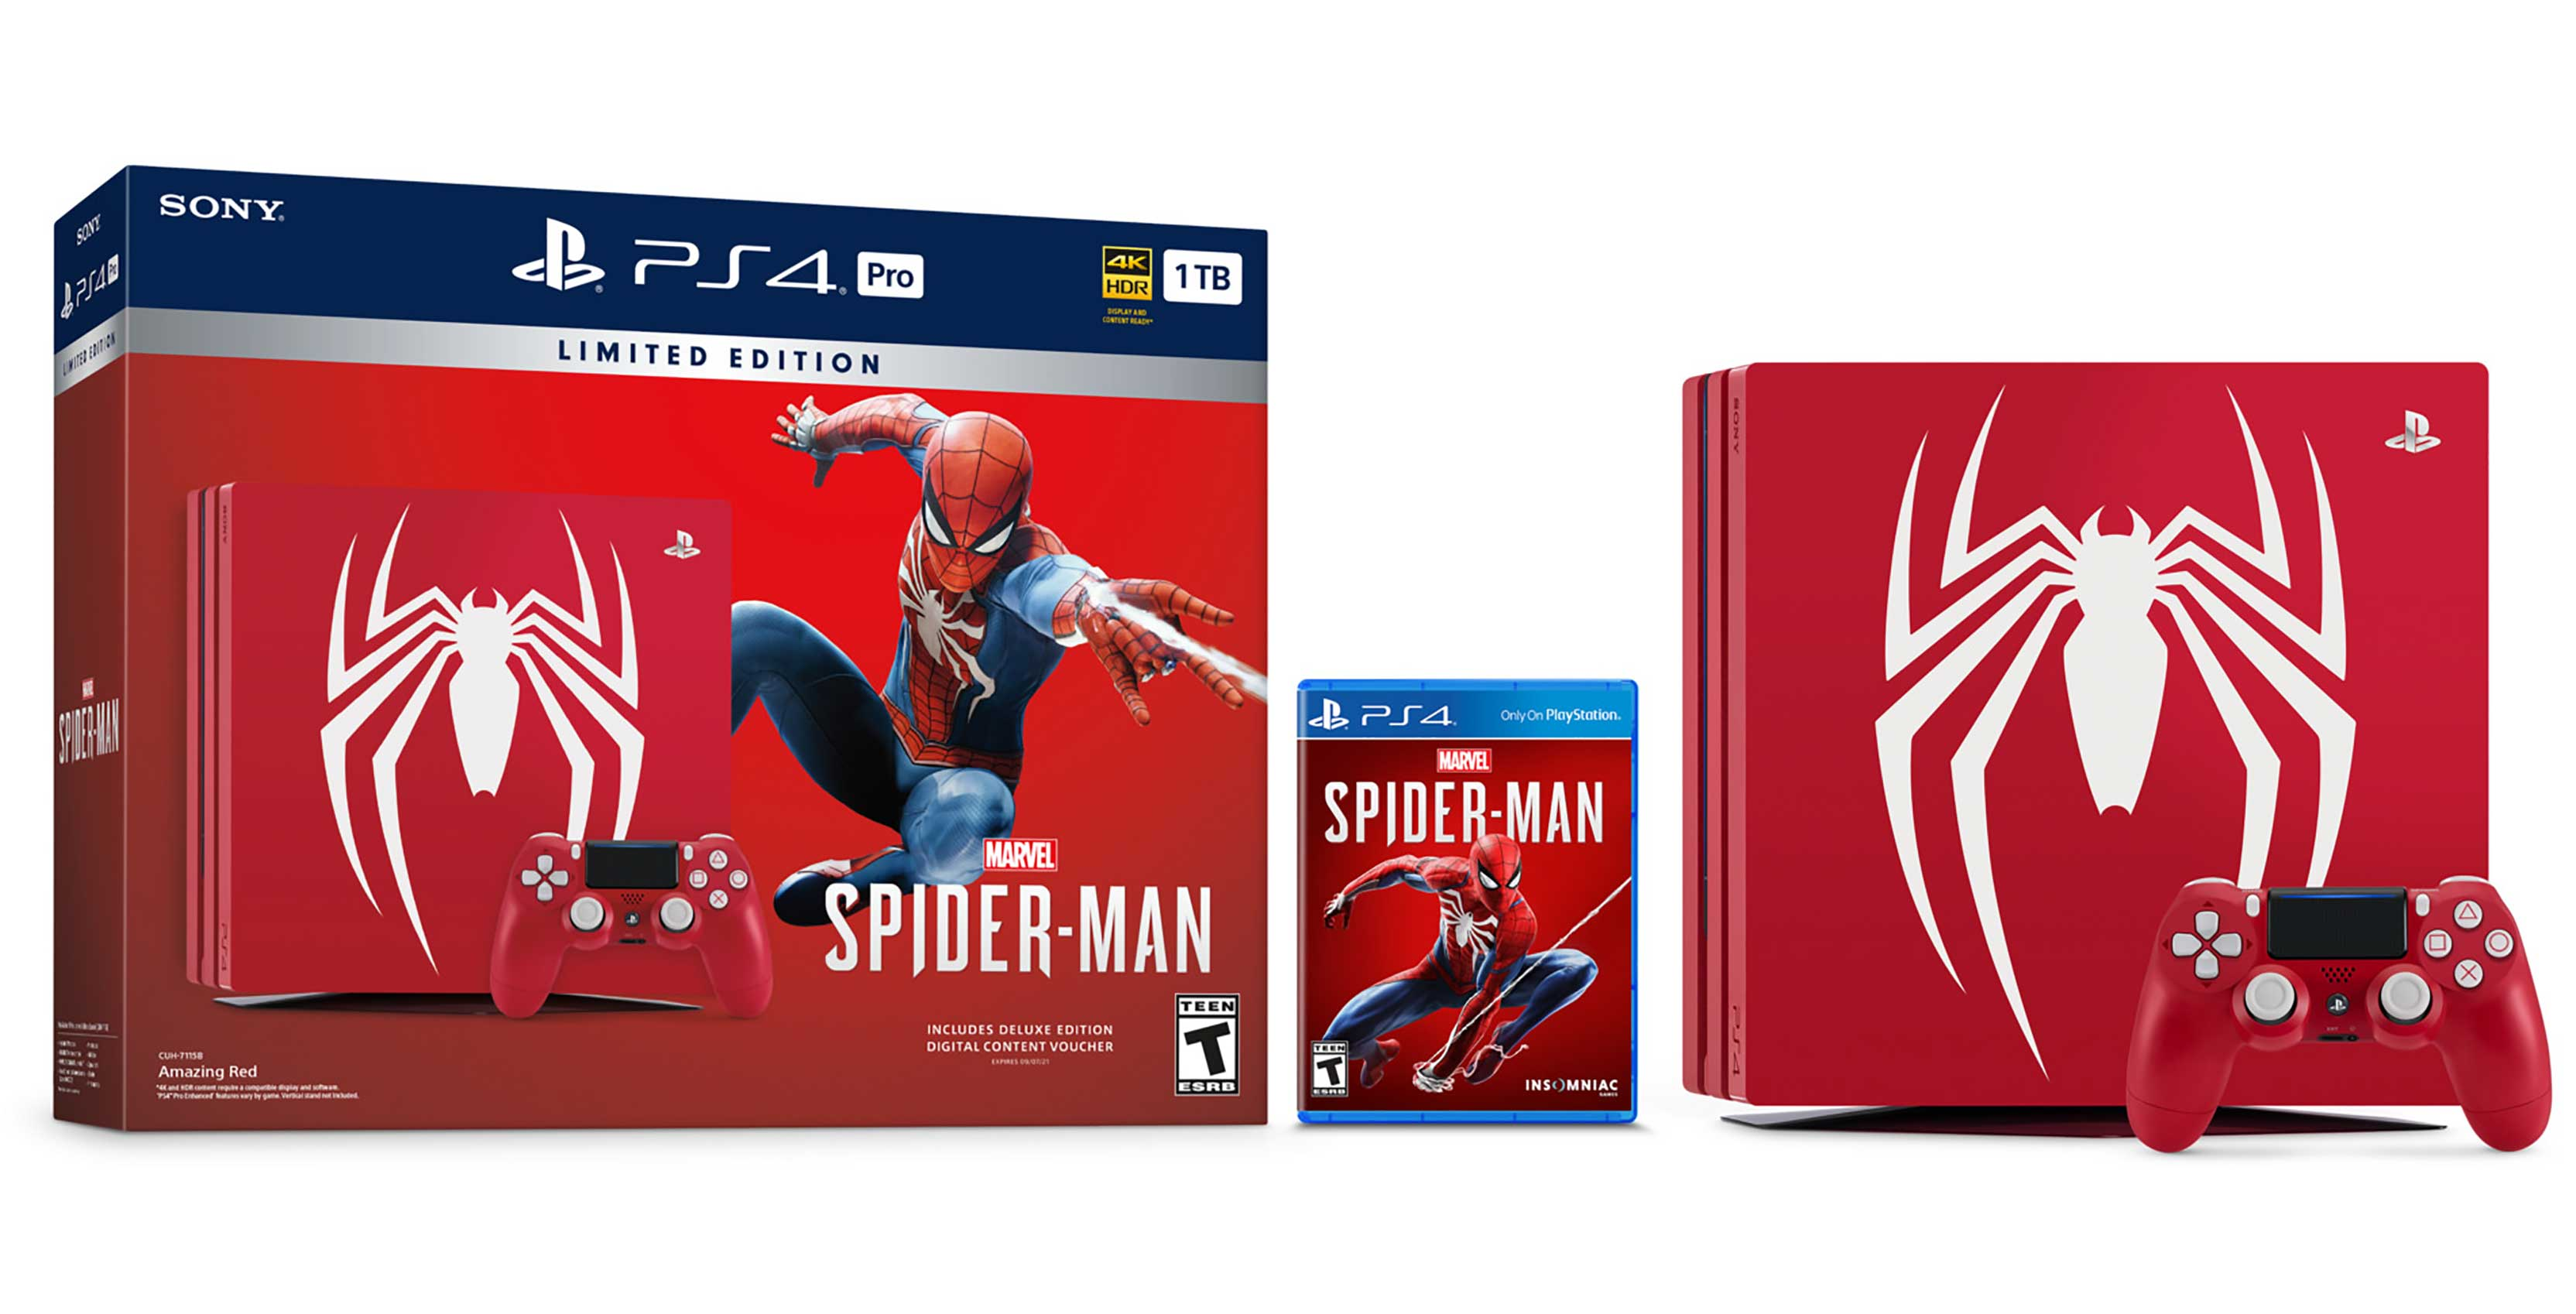 Sony Announces Limited Edition Spider Man Playstation 4 Pro